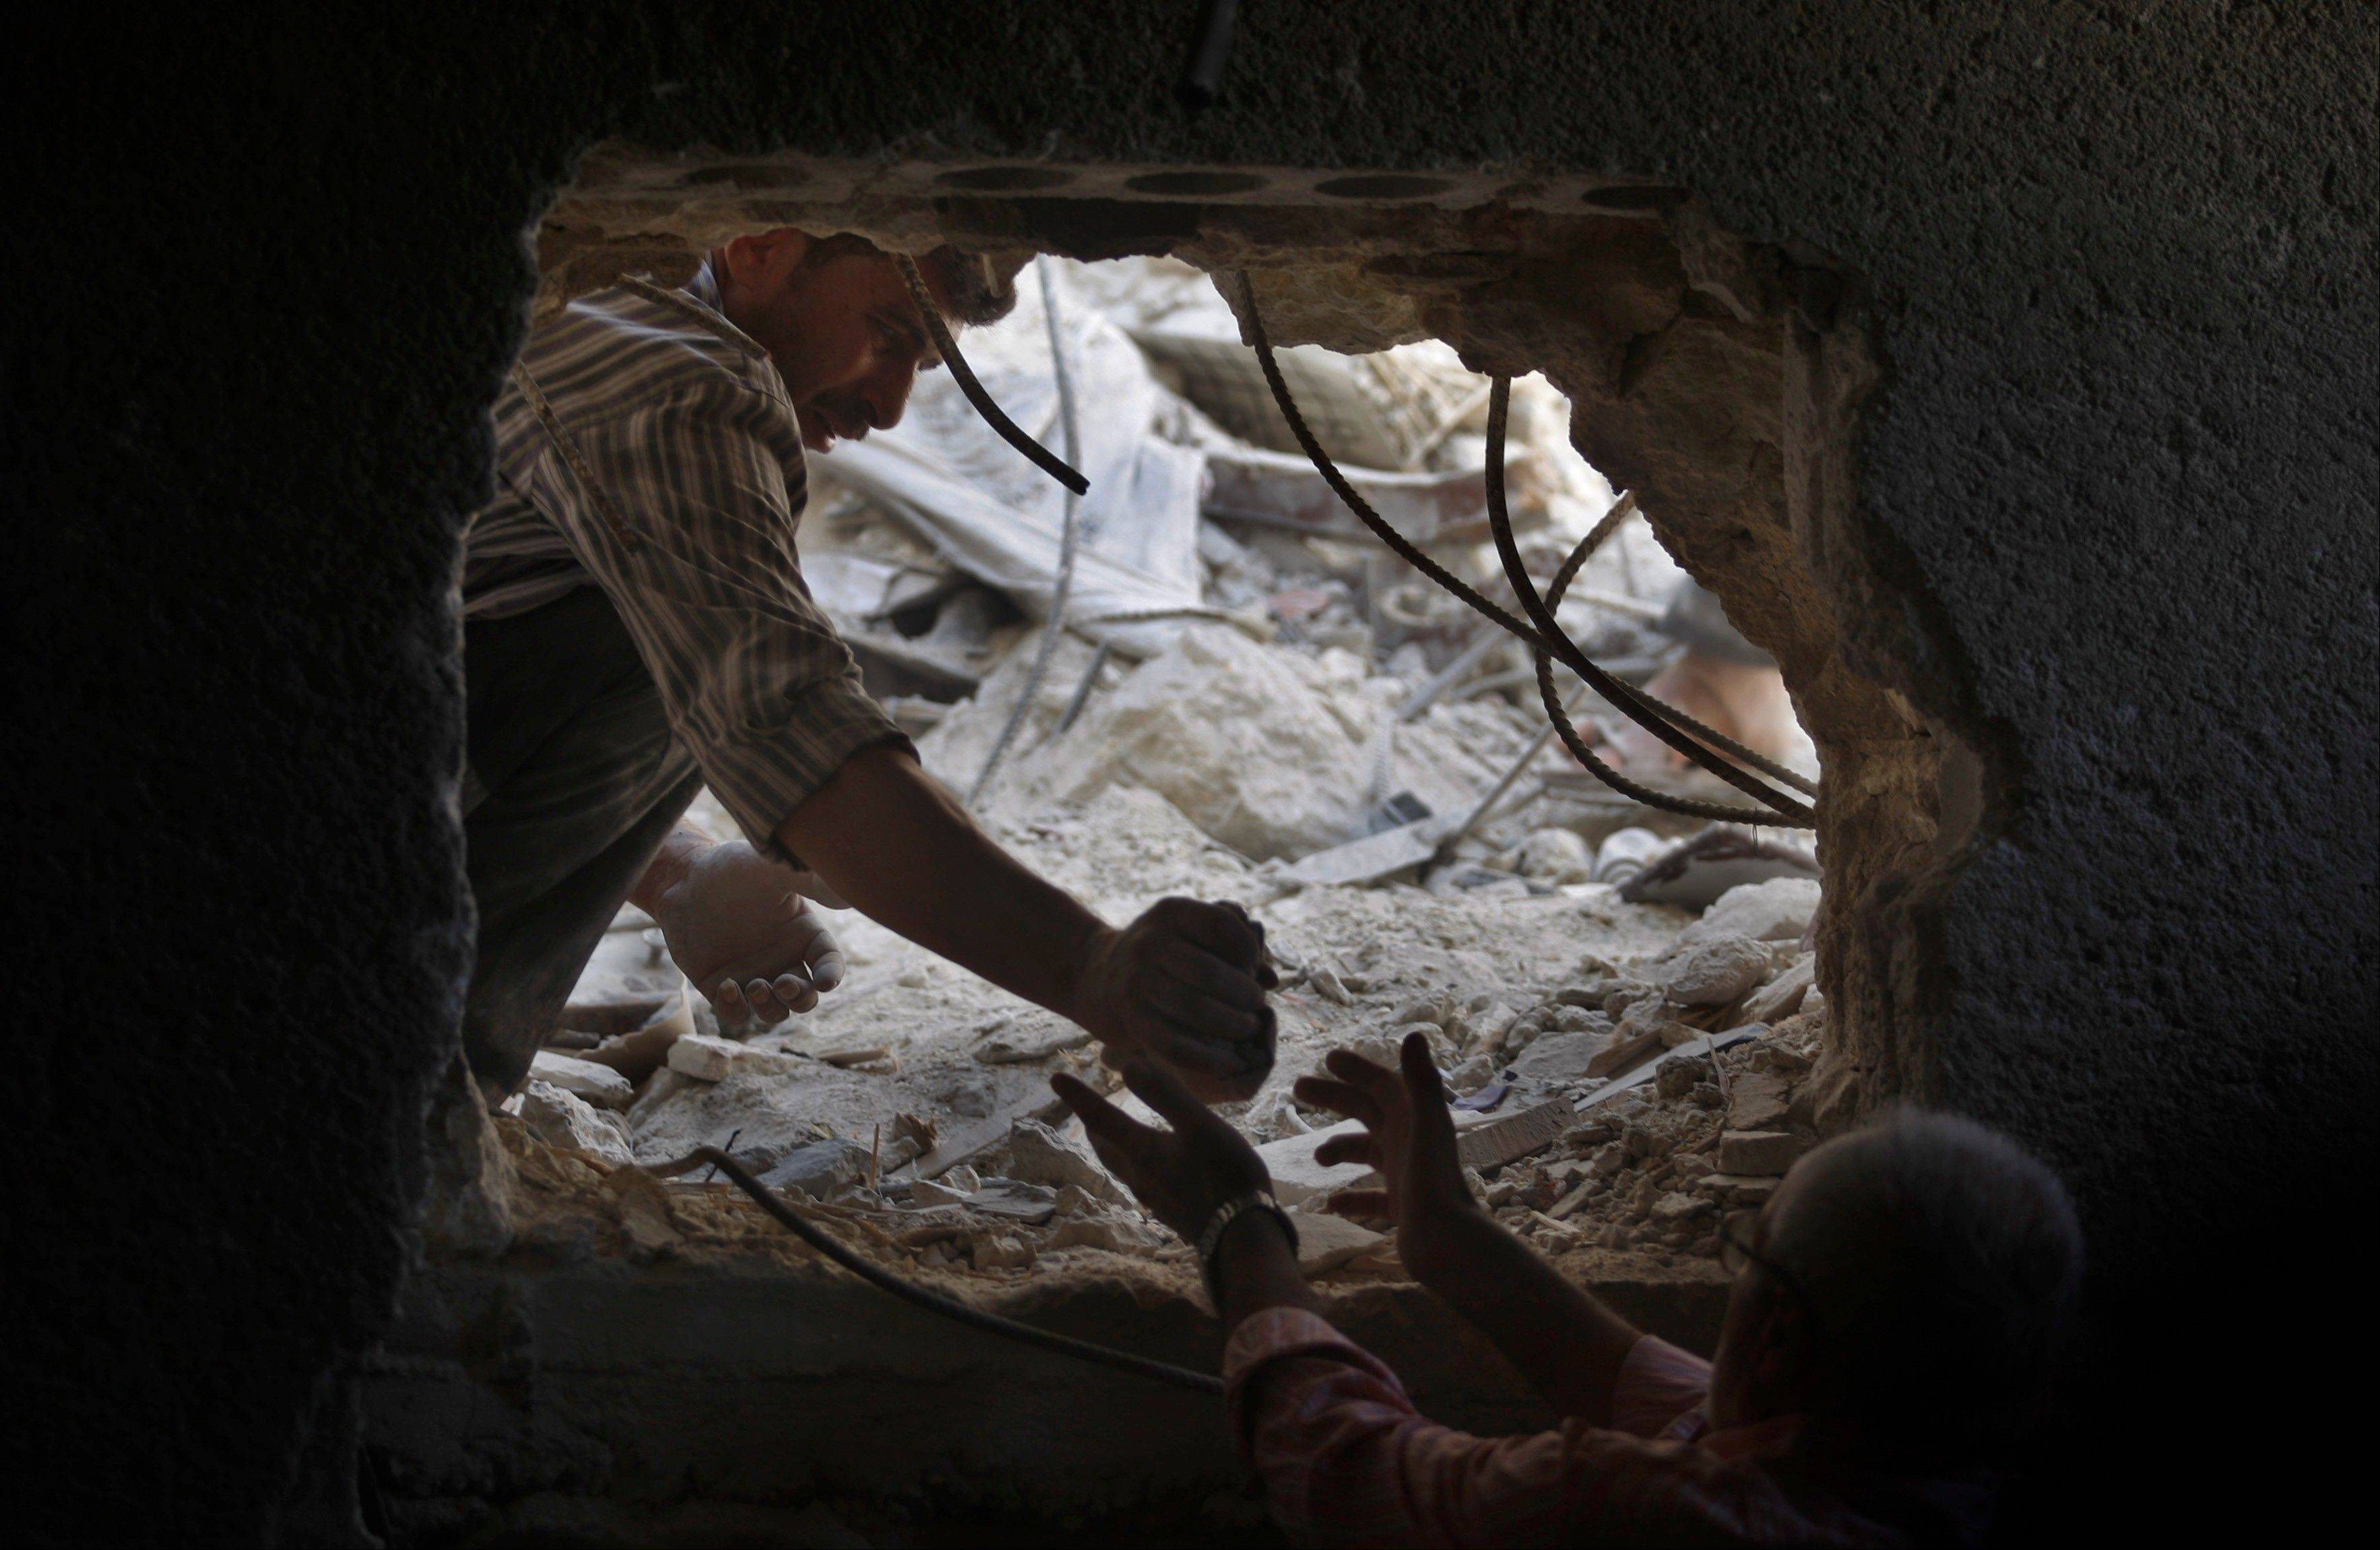 Syrians look for the bodies of two girls thought to be under the rubble of a building hit by a Syrian government airstrike in Aleppo, Syria, on Sunday.